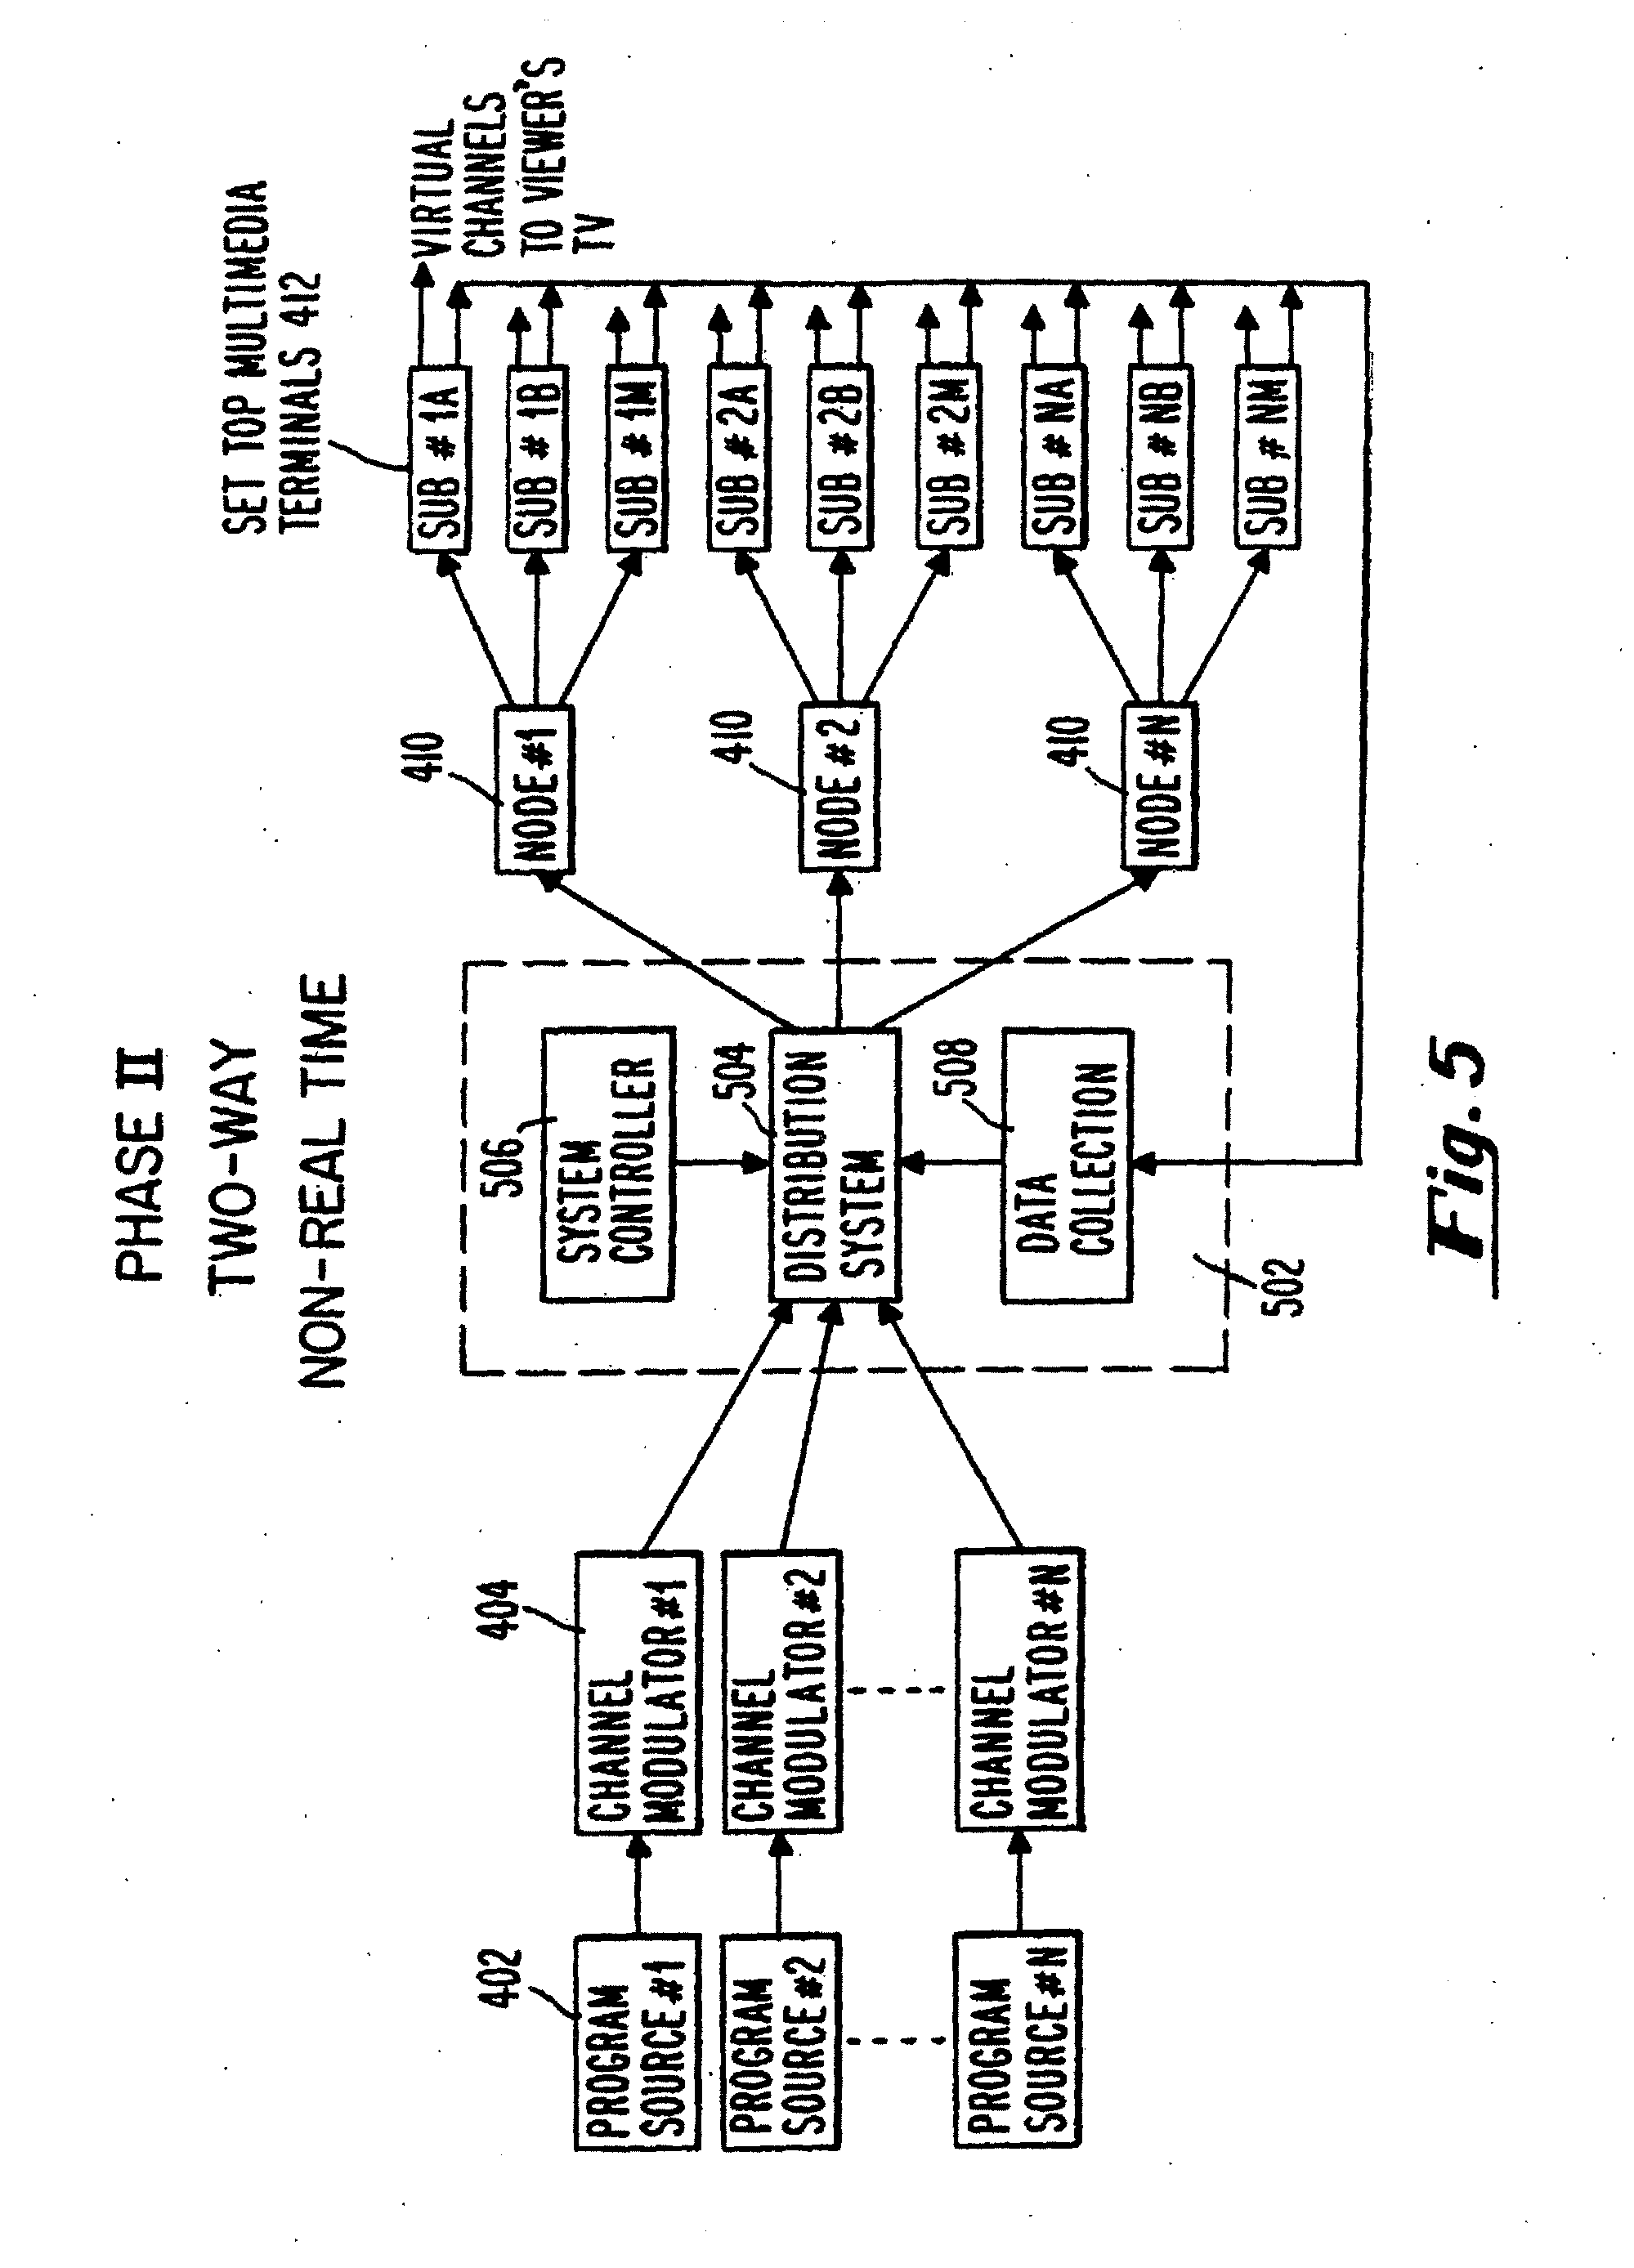 Us20120102523a1 System And Method For Providing Access To Data Voice Changer Circuit Diagram Using Customer Profiles Google Patents